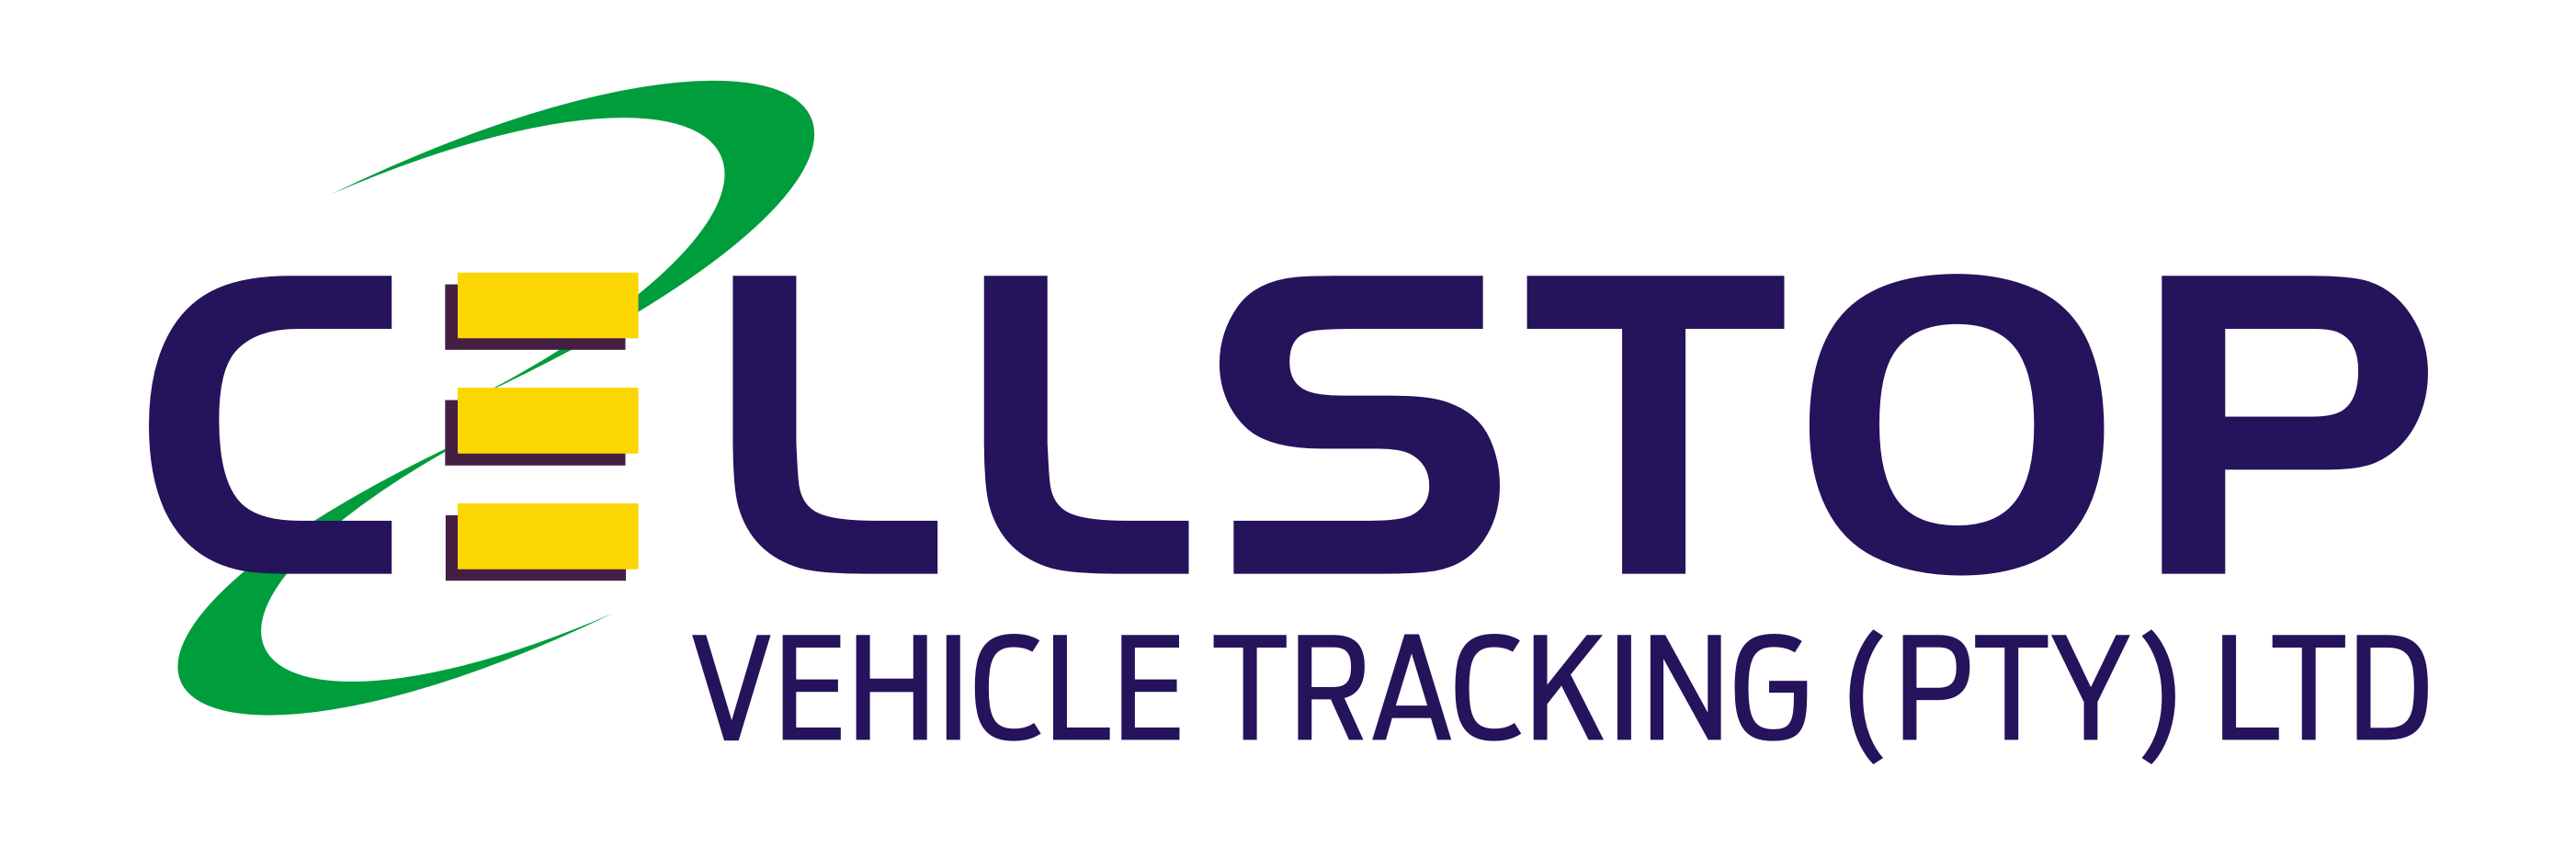 Cellstop Vehicle Tracking Namibia